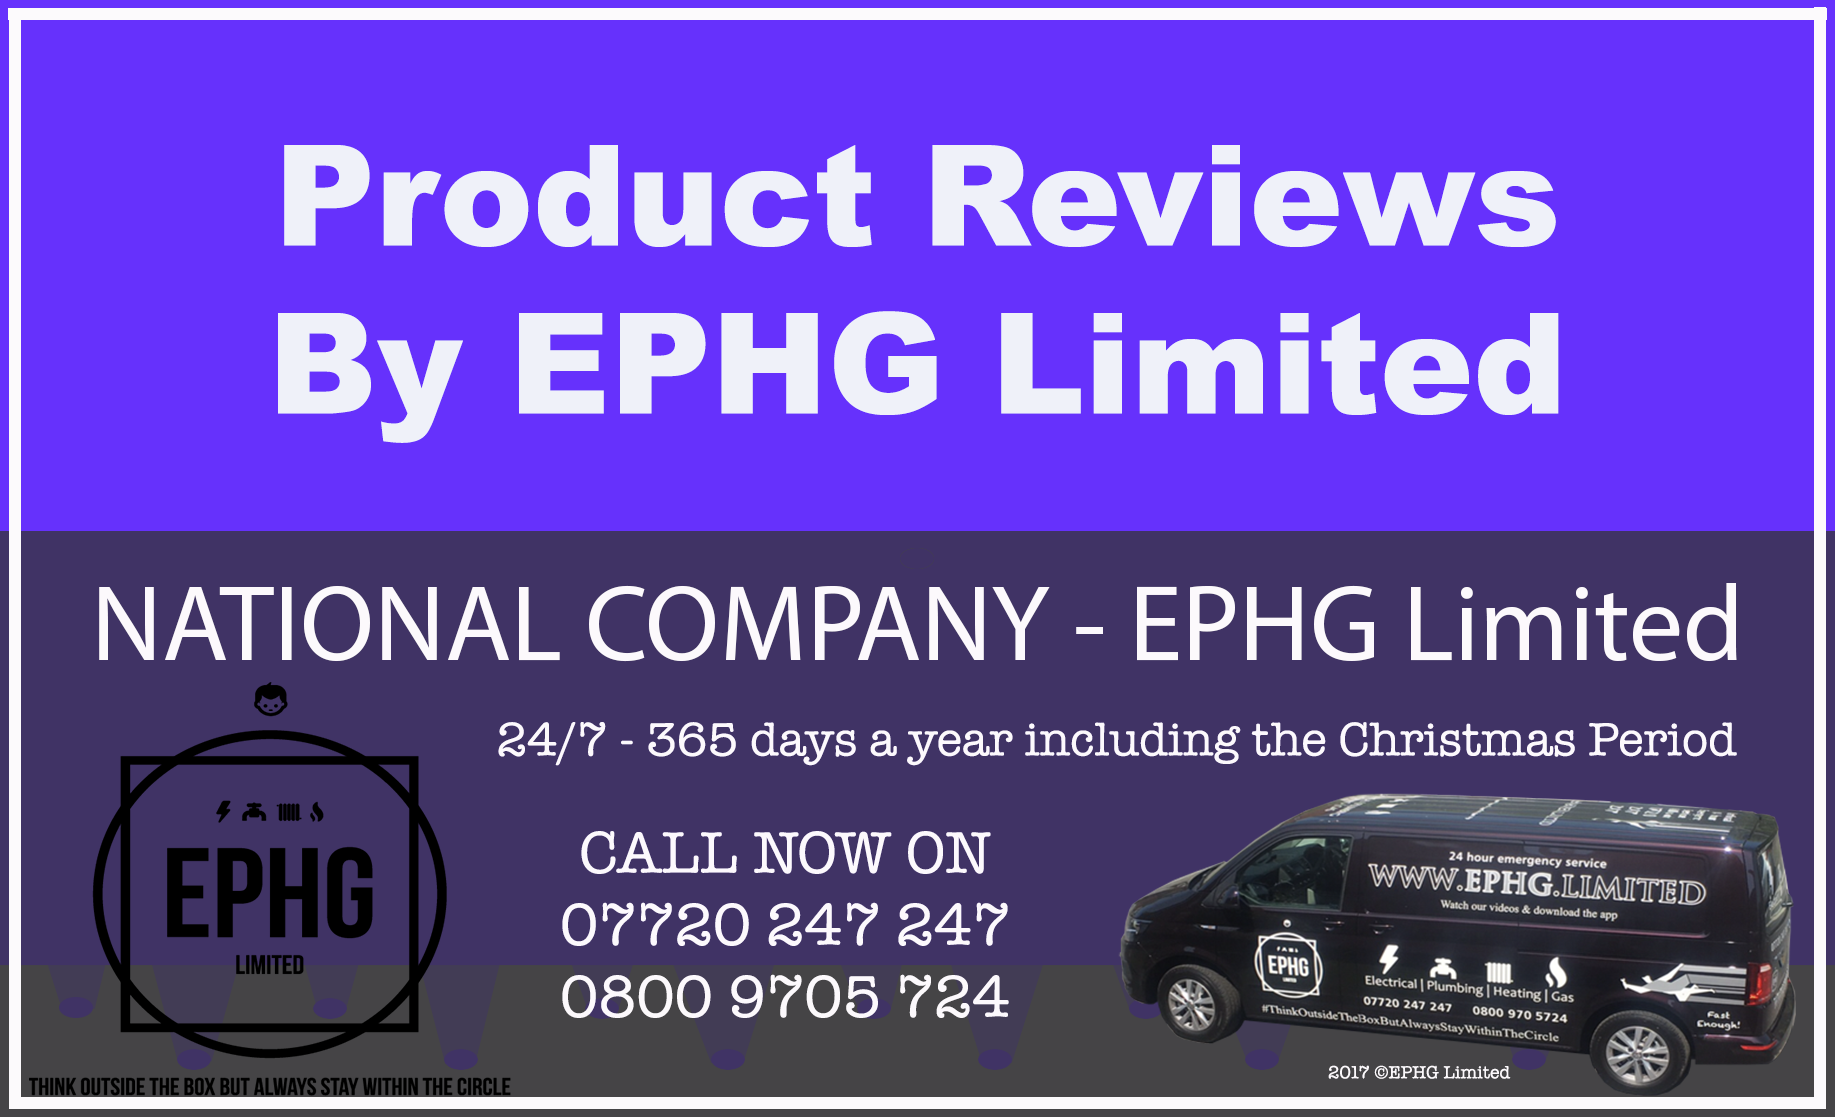 EPHG Limited Product Reviews